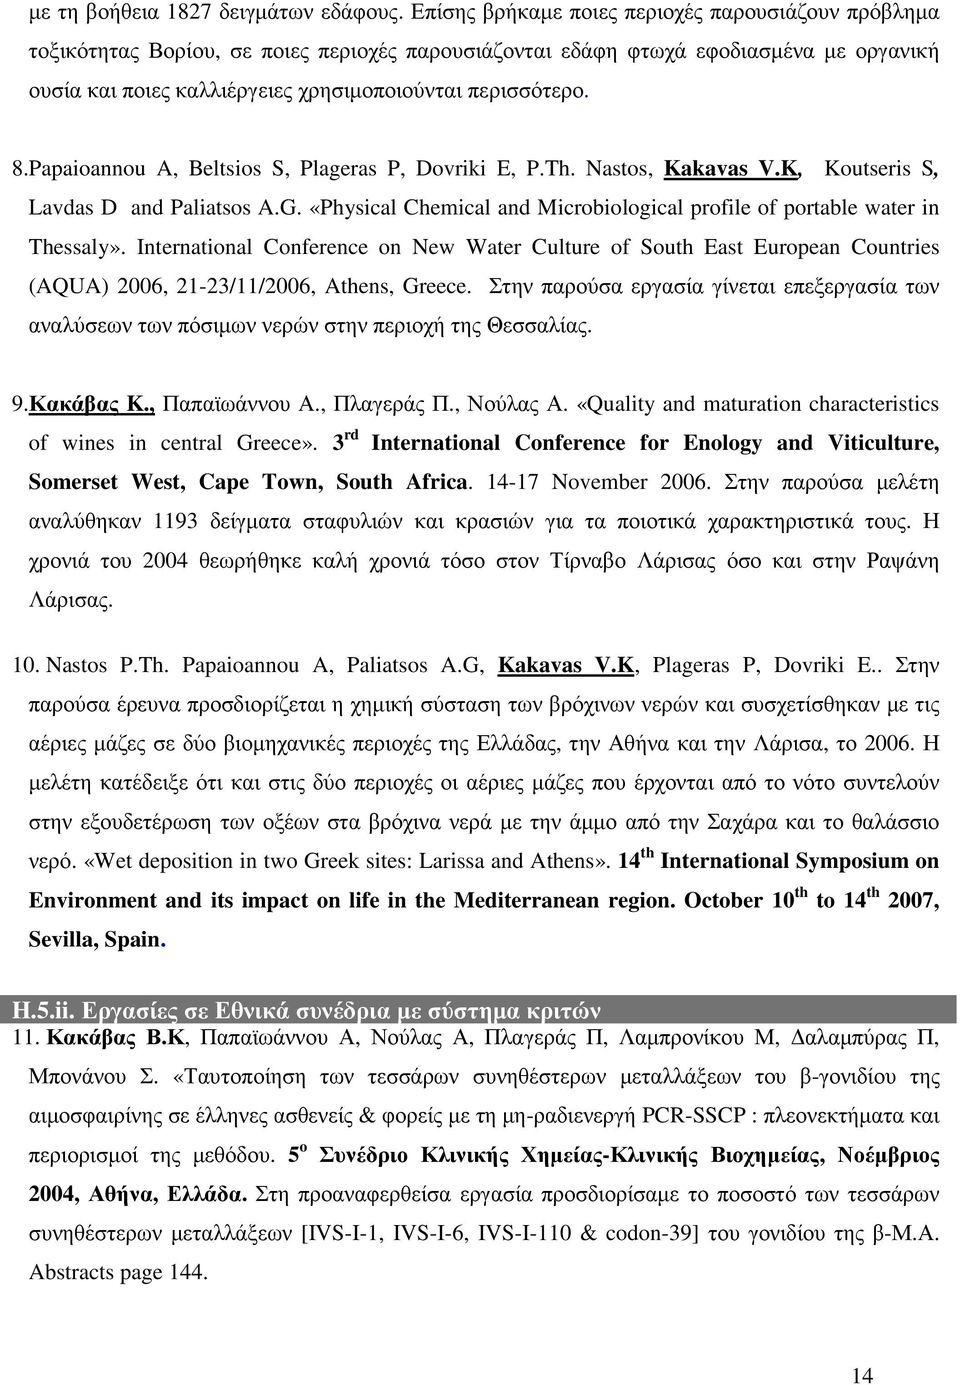 8.Papaioannou A, Beltsios S, Plageras P, Dovriki E, P.Th. Nastos, Kakavas V.K, Koutseris S, Lavdas D and Paliatsos A.G. «Physical Chemical and Microbiological profile of portable water in Thessaly».